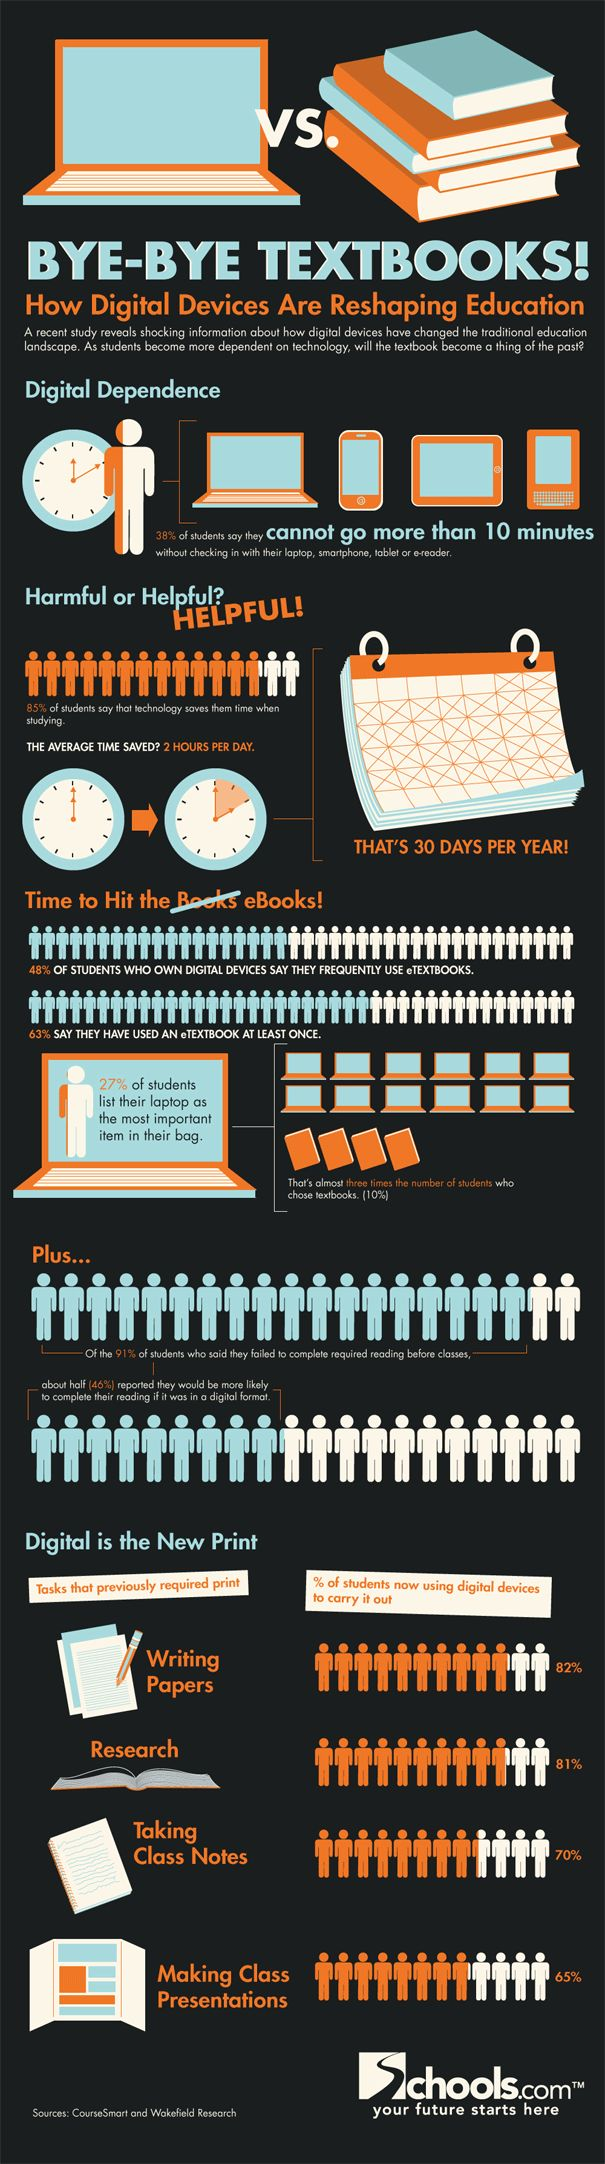 How Digital Devices Are Reshaping Education (infographic)